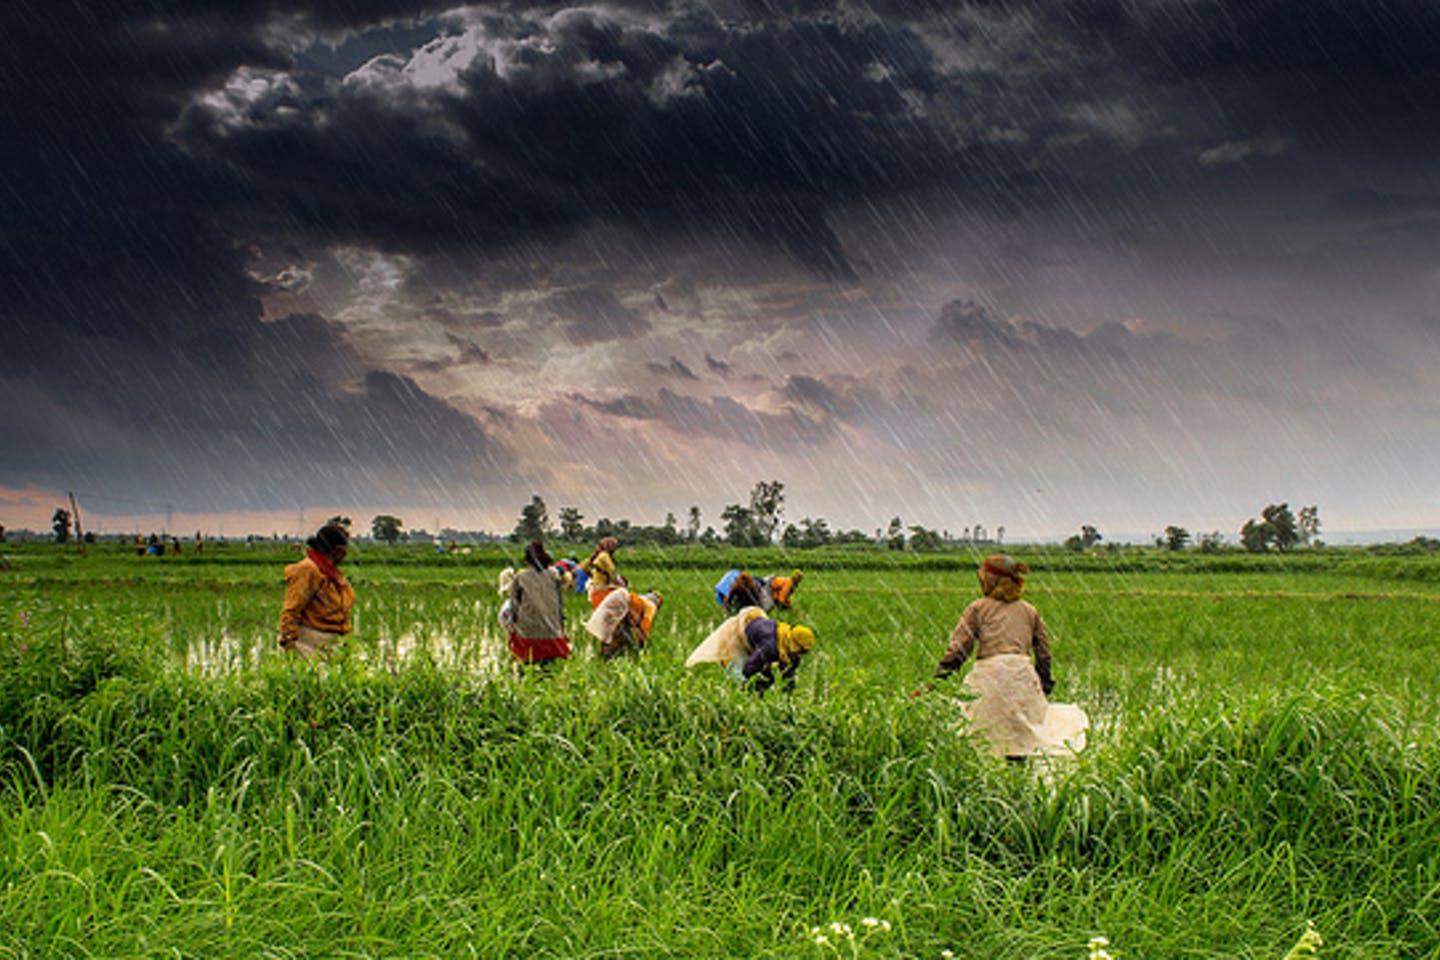 Farming under the monsoon rains in India